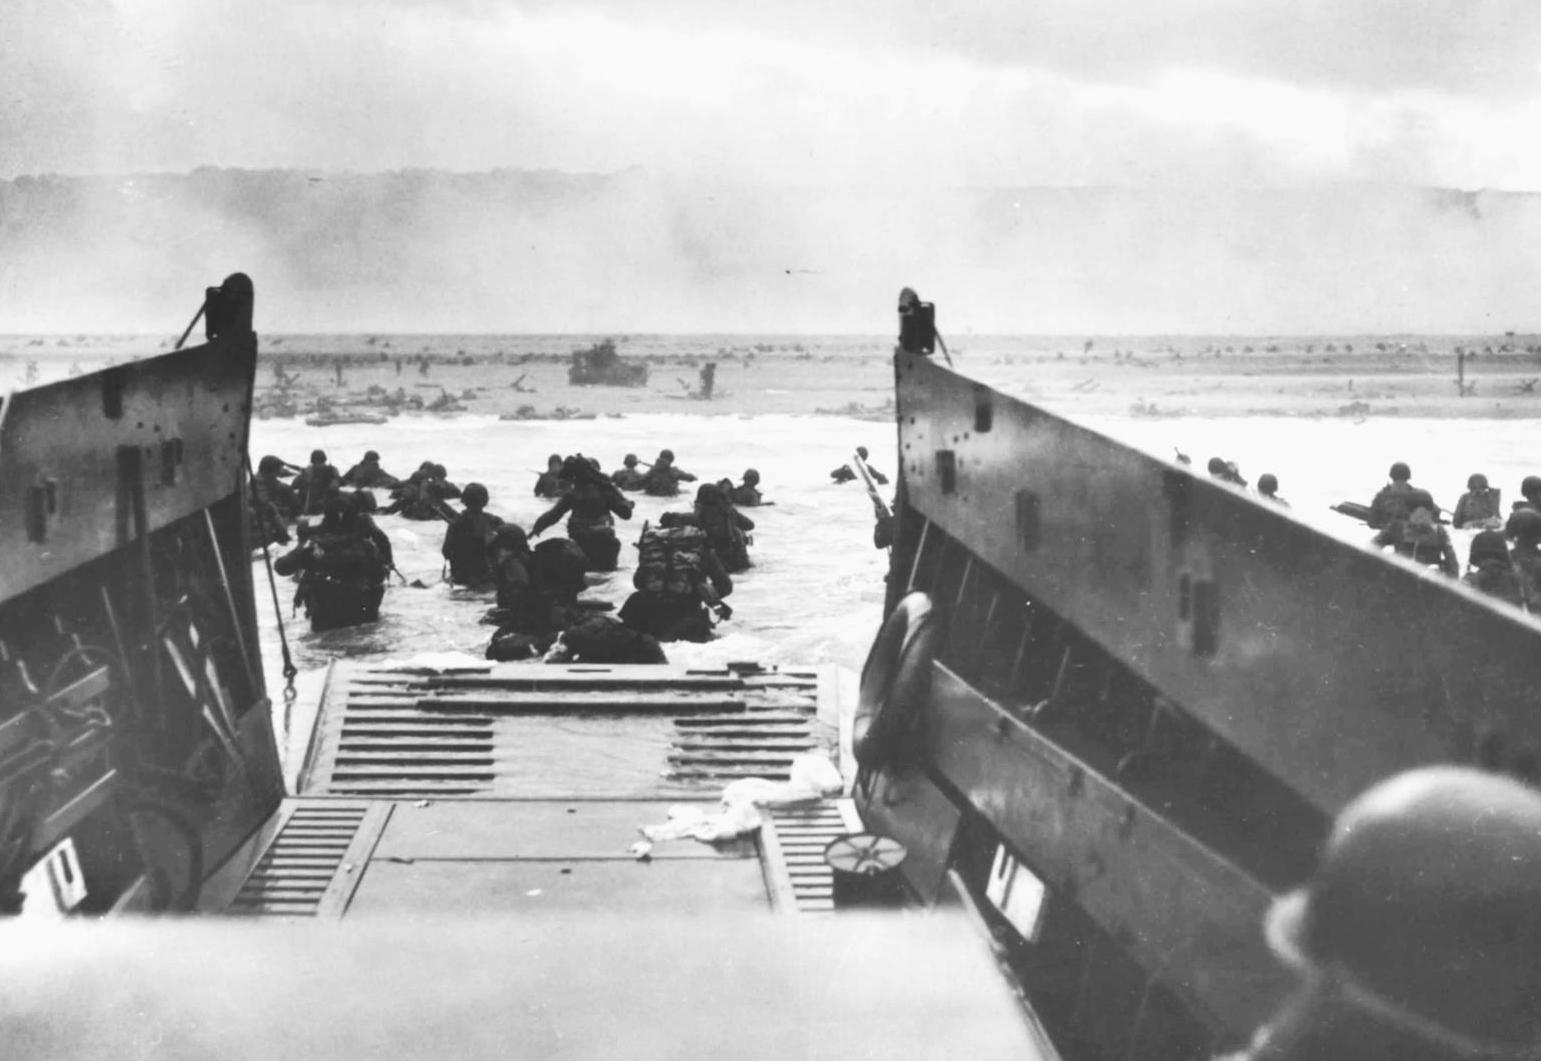 American troops arriving at Omaha Beach on June 6, 1944. Photo courtesy of Musée Memorial D'Omaha Beach, Saint Laurent-sur-Mer